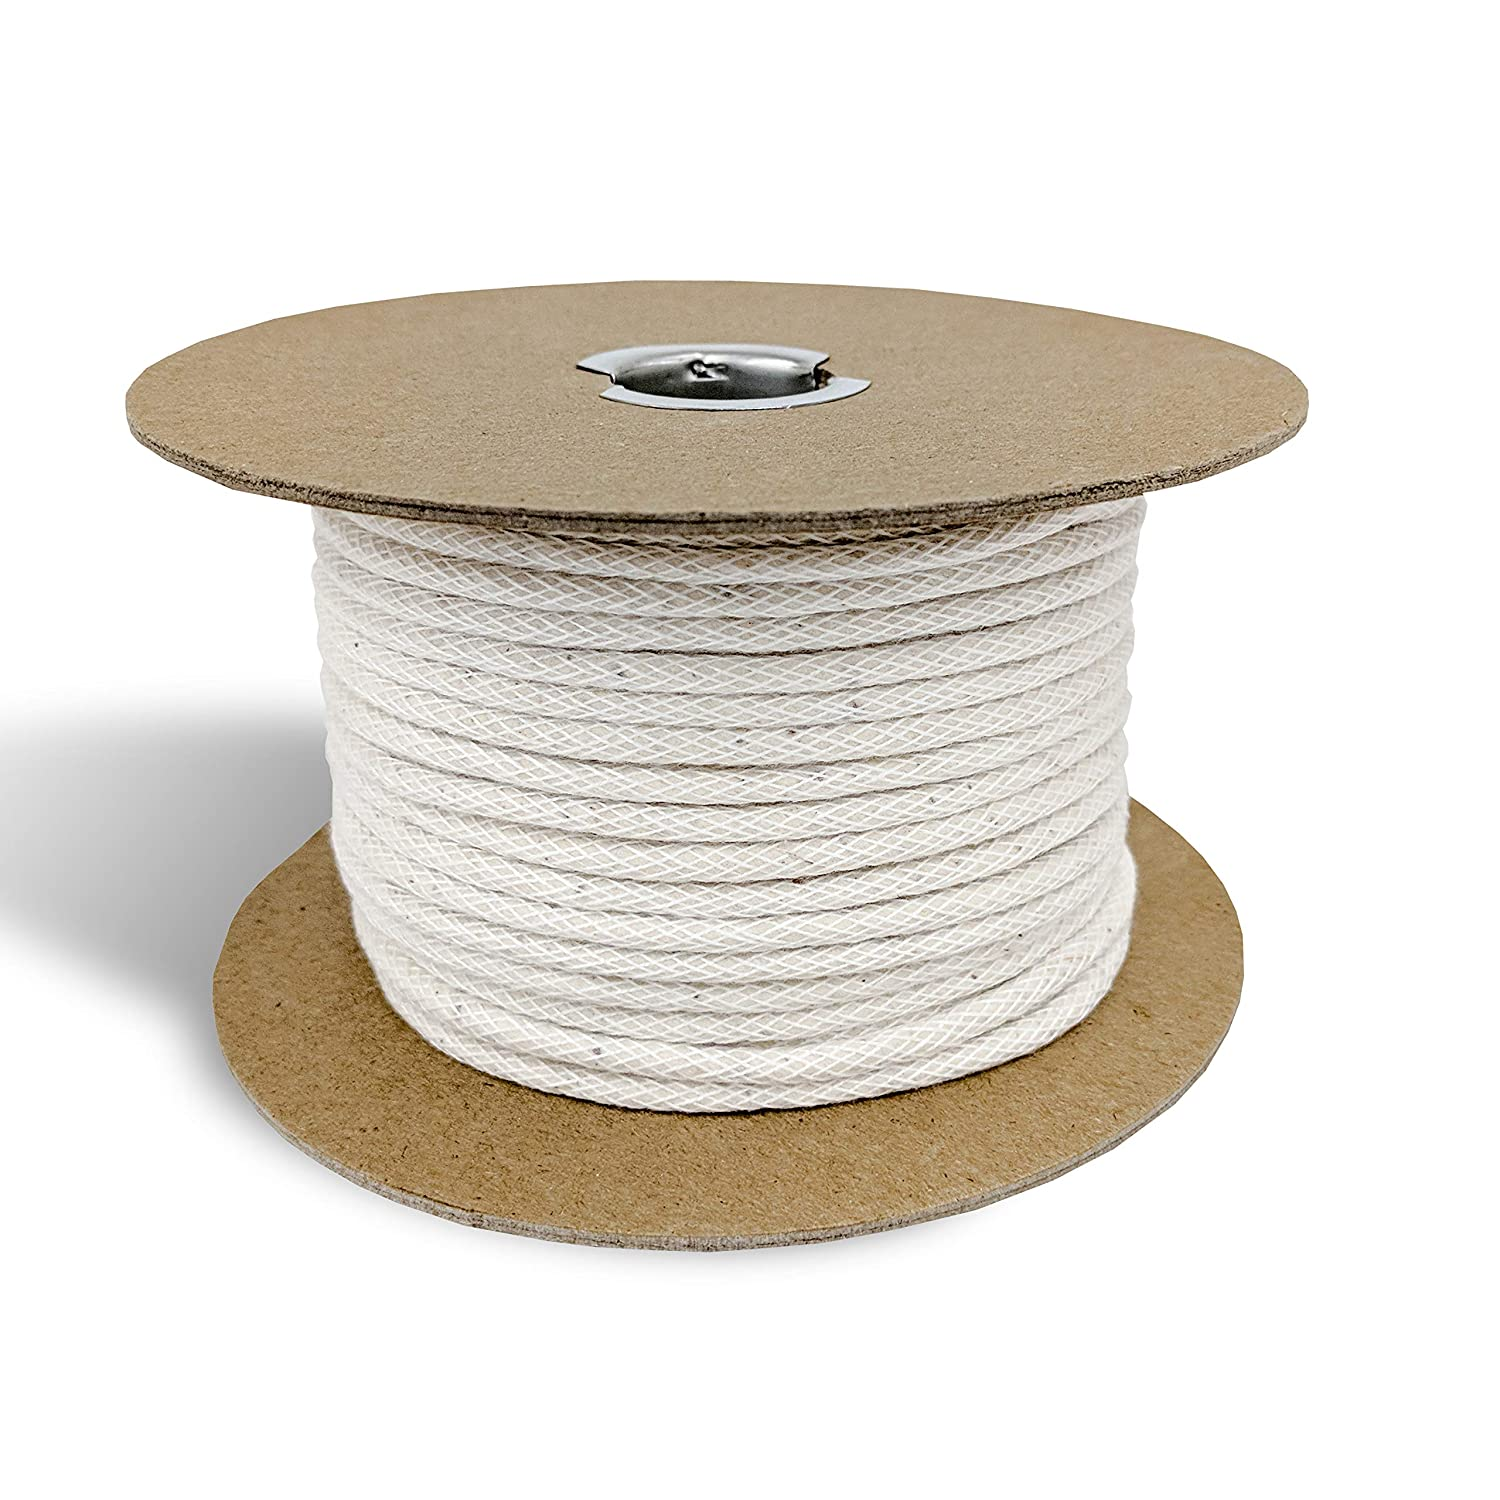 Upholstery Cotton Piping Welt Cord for Furniture//Crafts 50yd Spool Made in USA